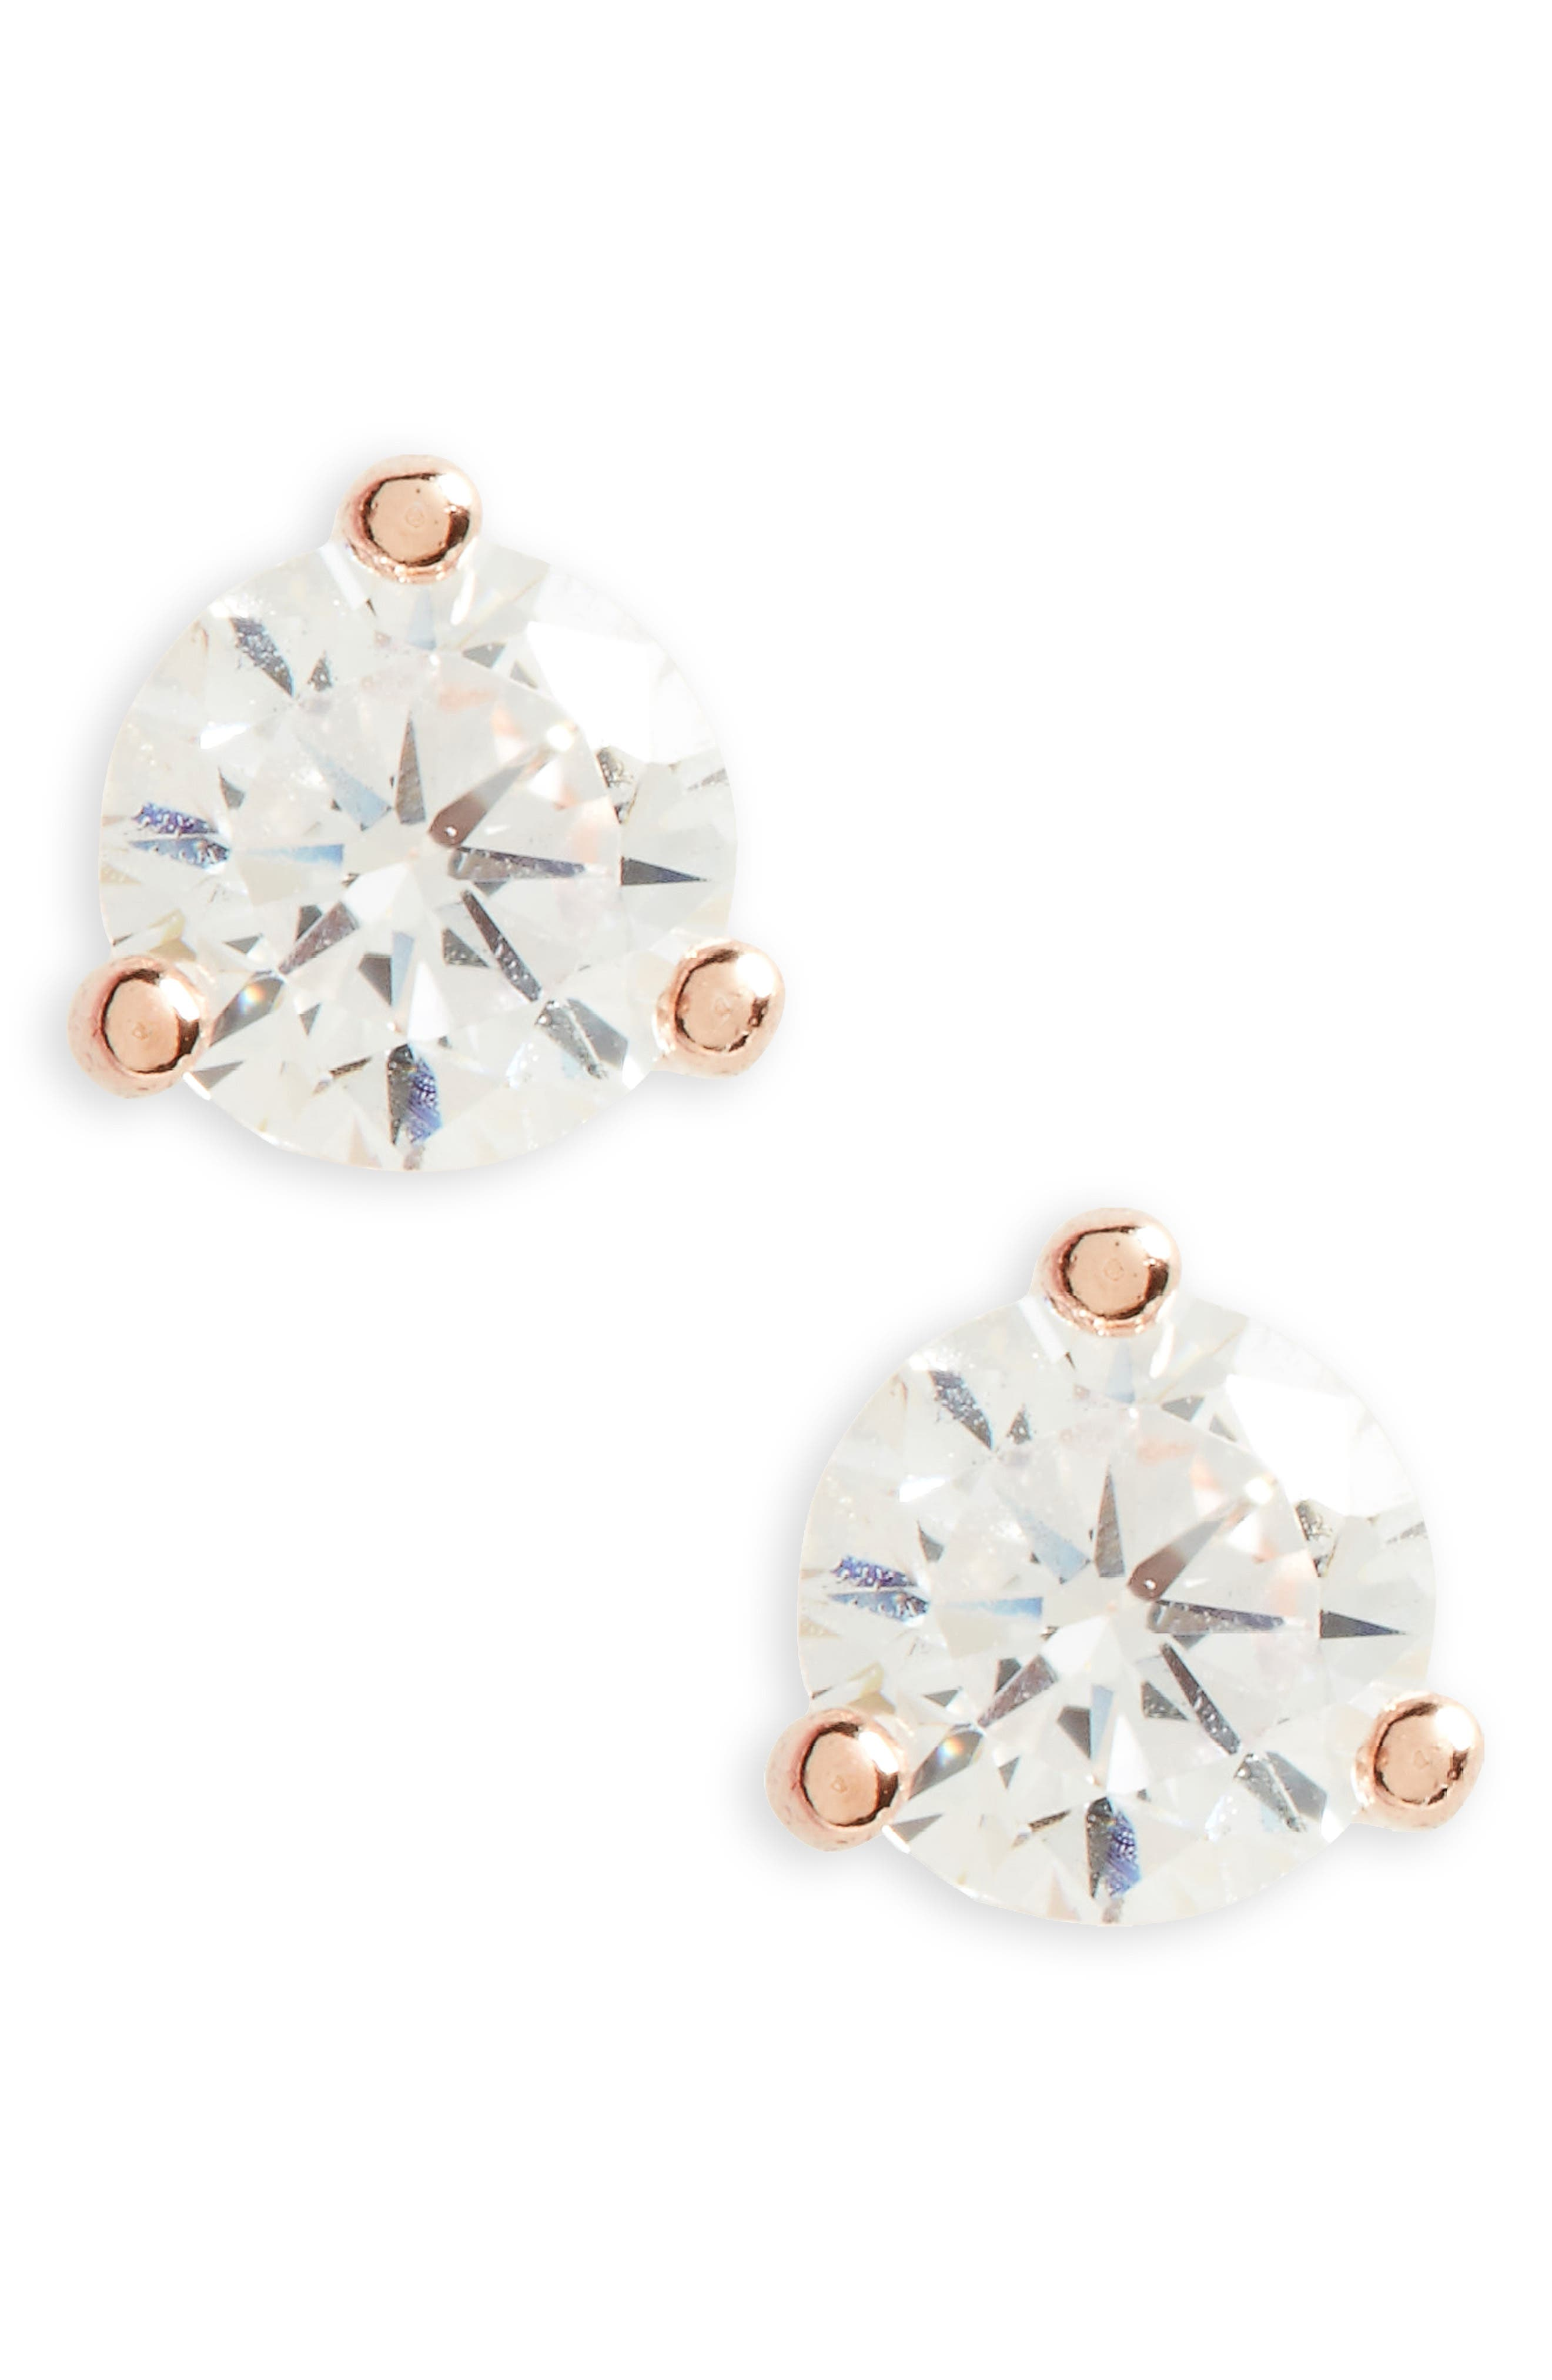 0.25ct tw Cubic Zirconia Stud Earrings,                             Main thumbnail 1, color,                             CLEAR- ROSE GOLD